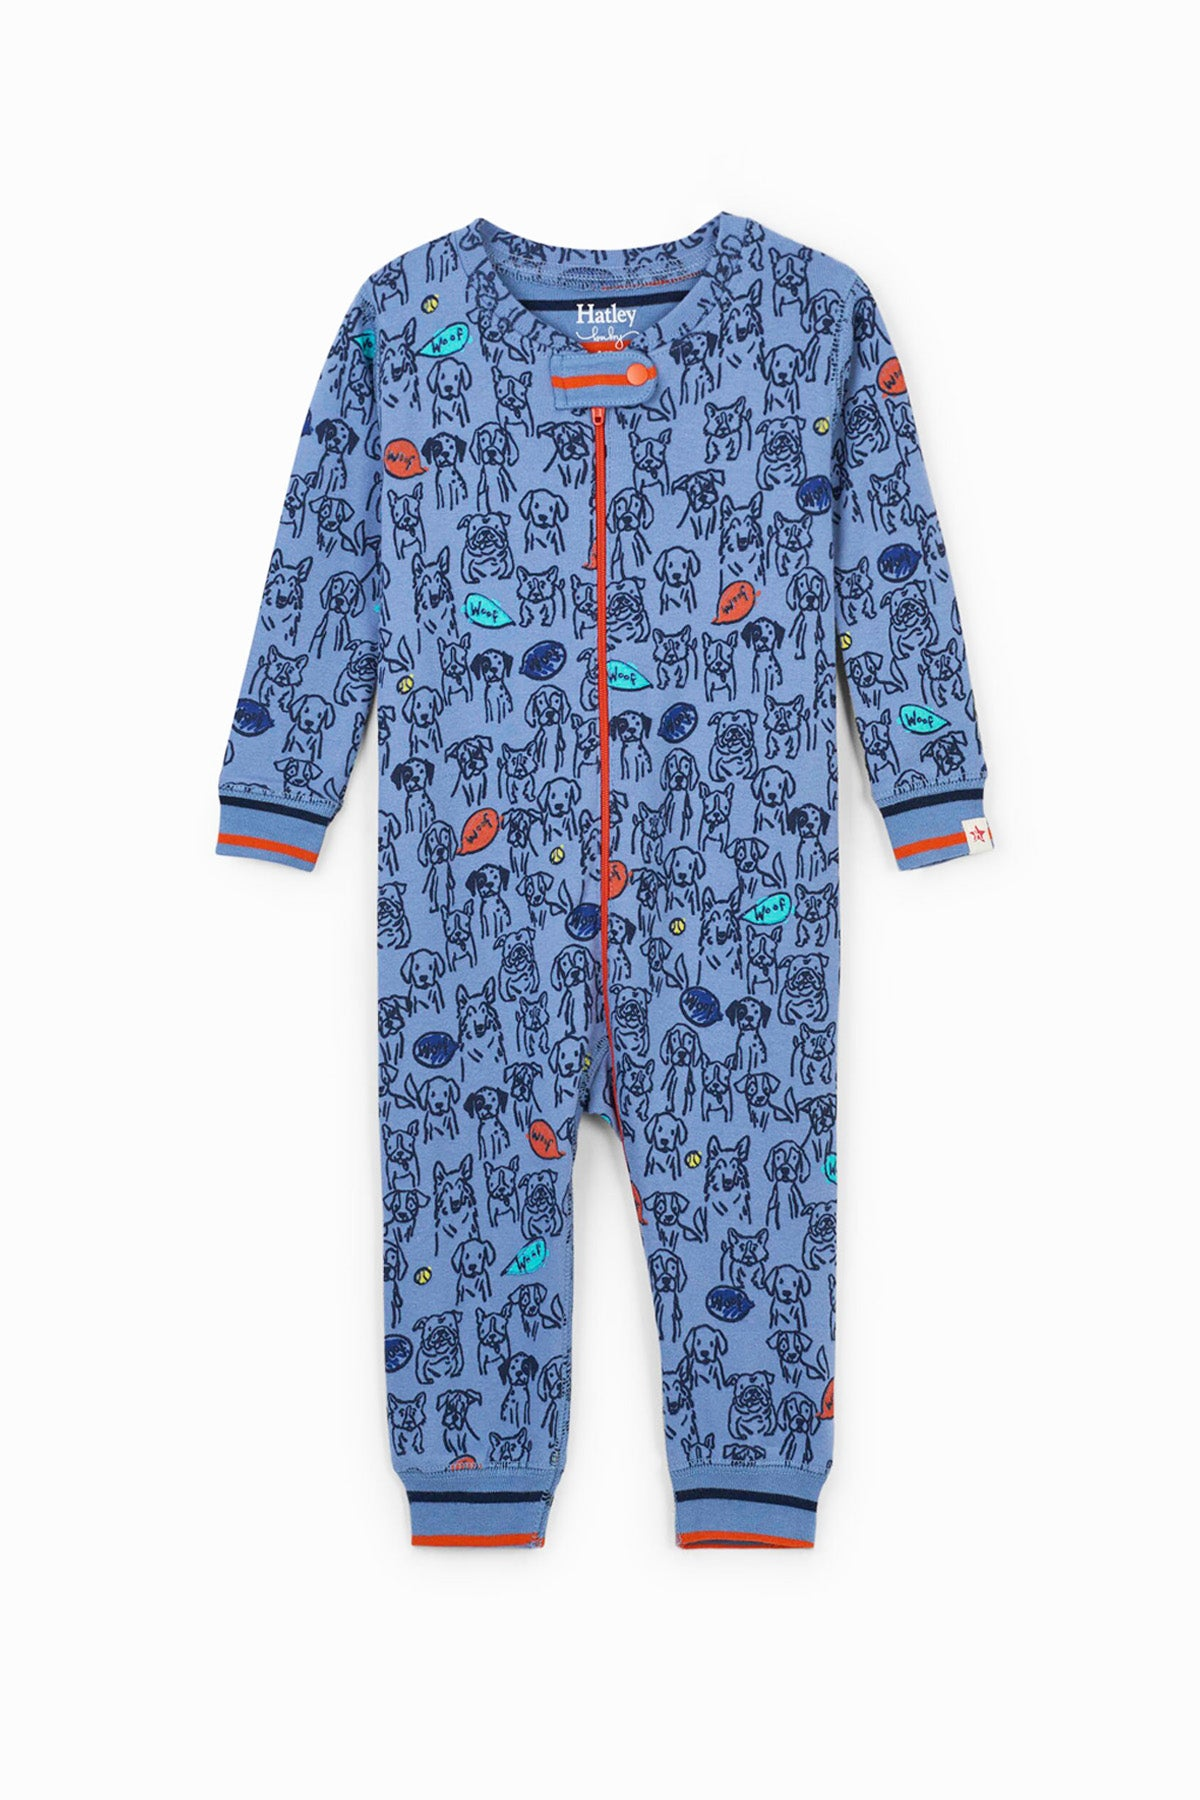 Hatley Puppy Pals Coverall